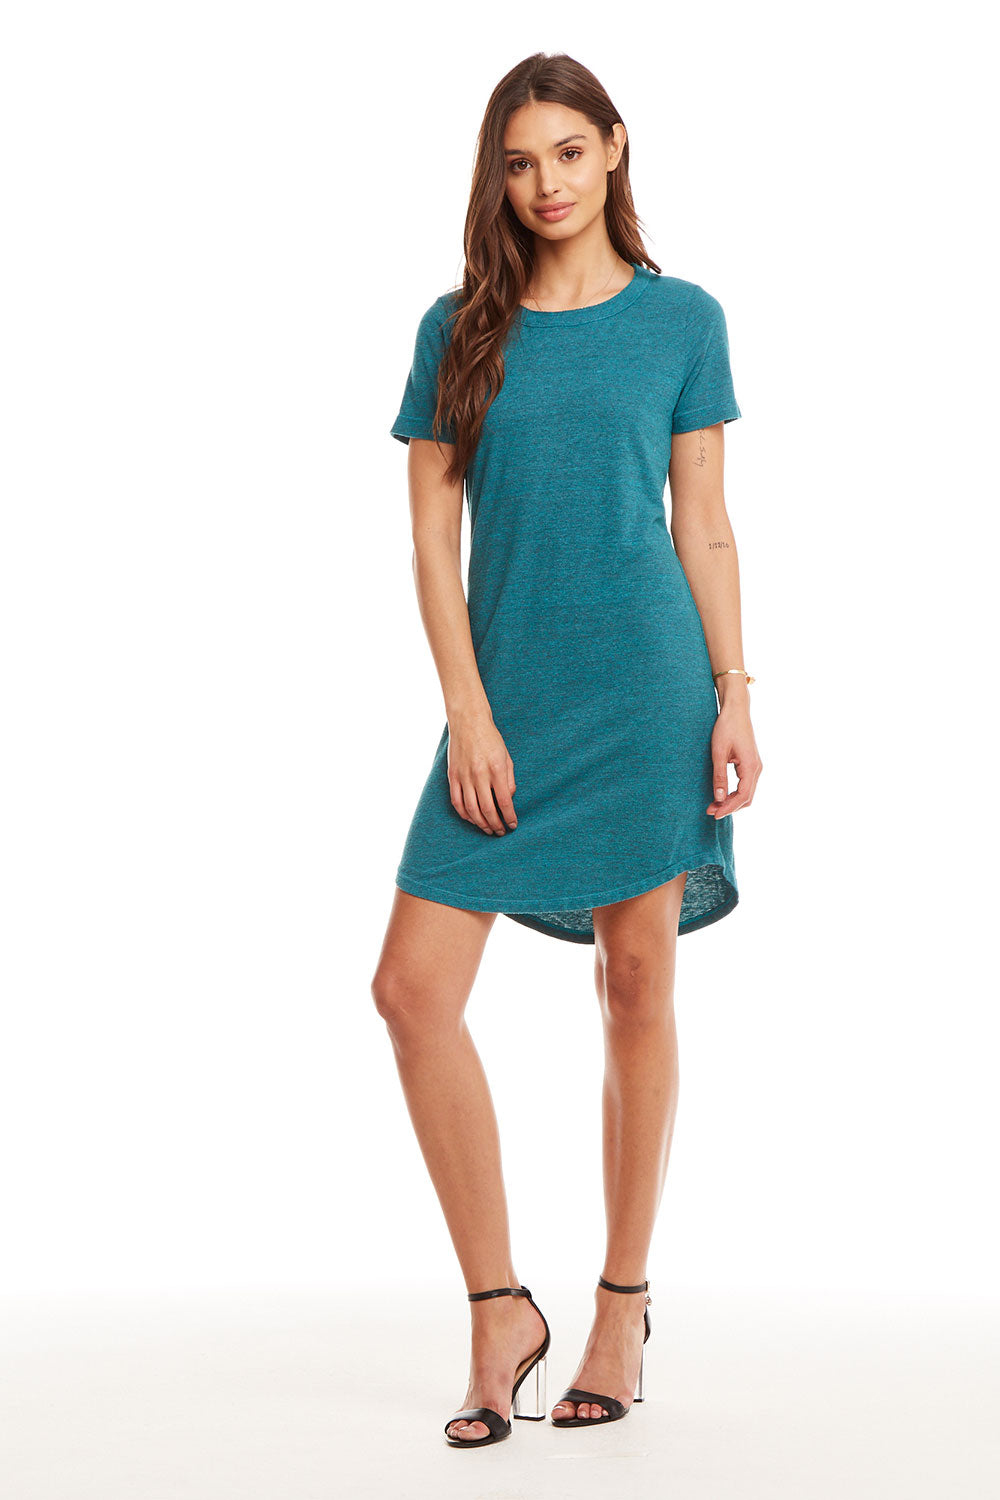 Triblend S/S Crew Neck Hi-Lo Shirttail T Shirt Dress WOMENS - chaserbrand